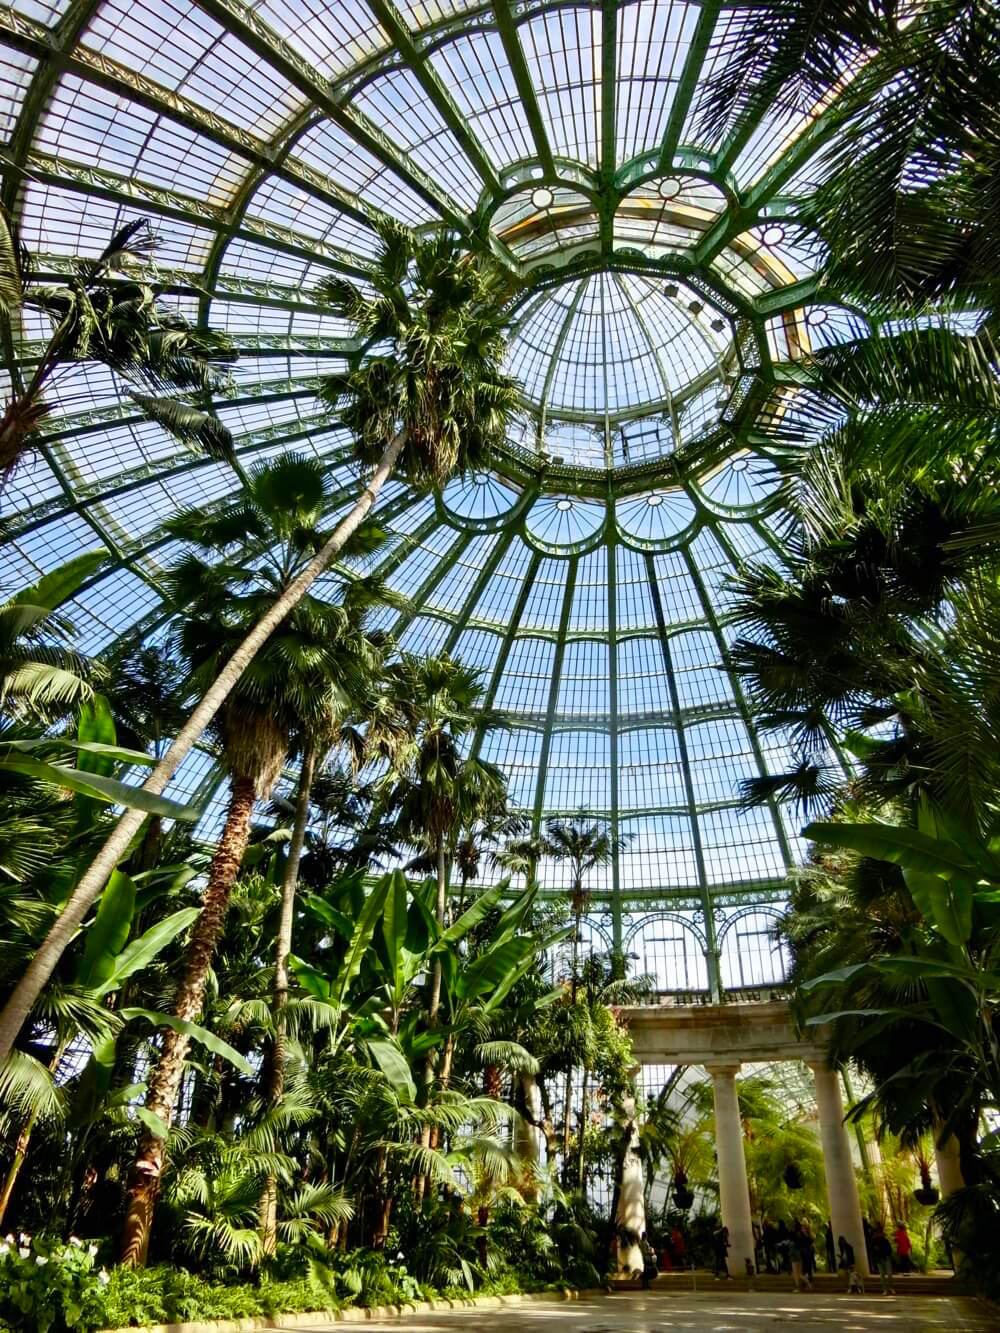 Winter Garden @ Royal Greenhouse of Laeken